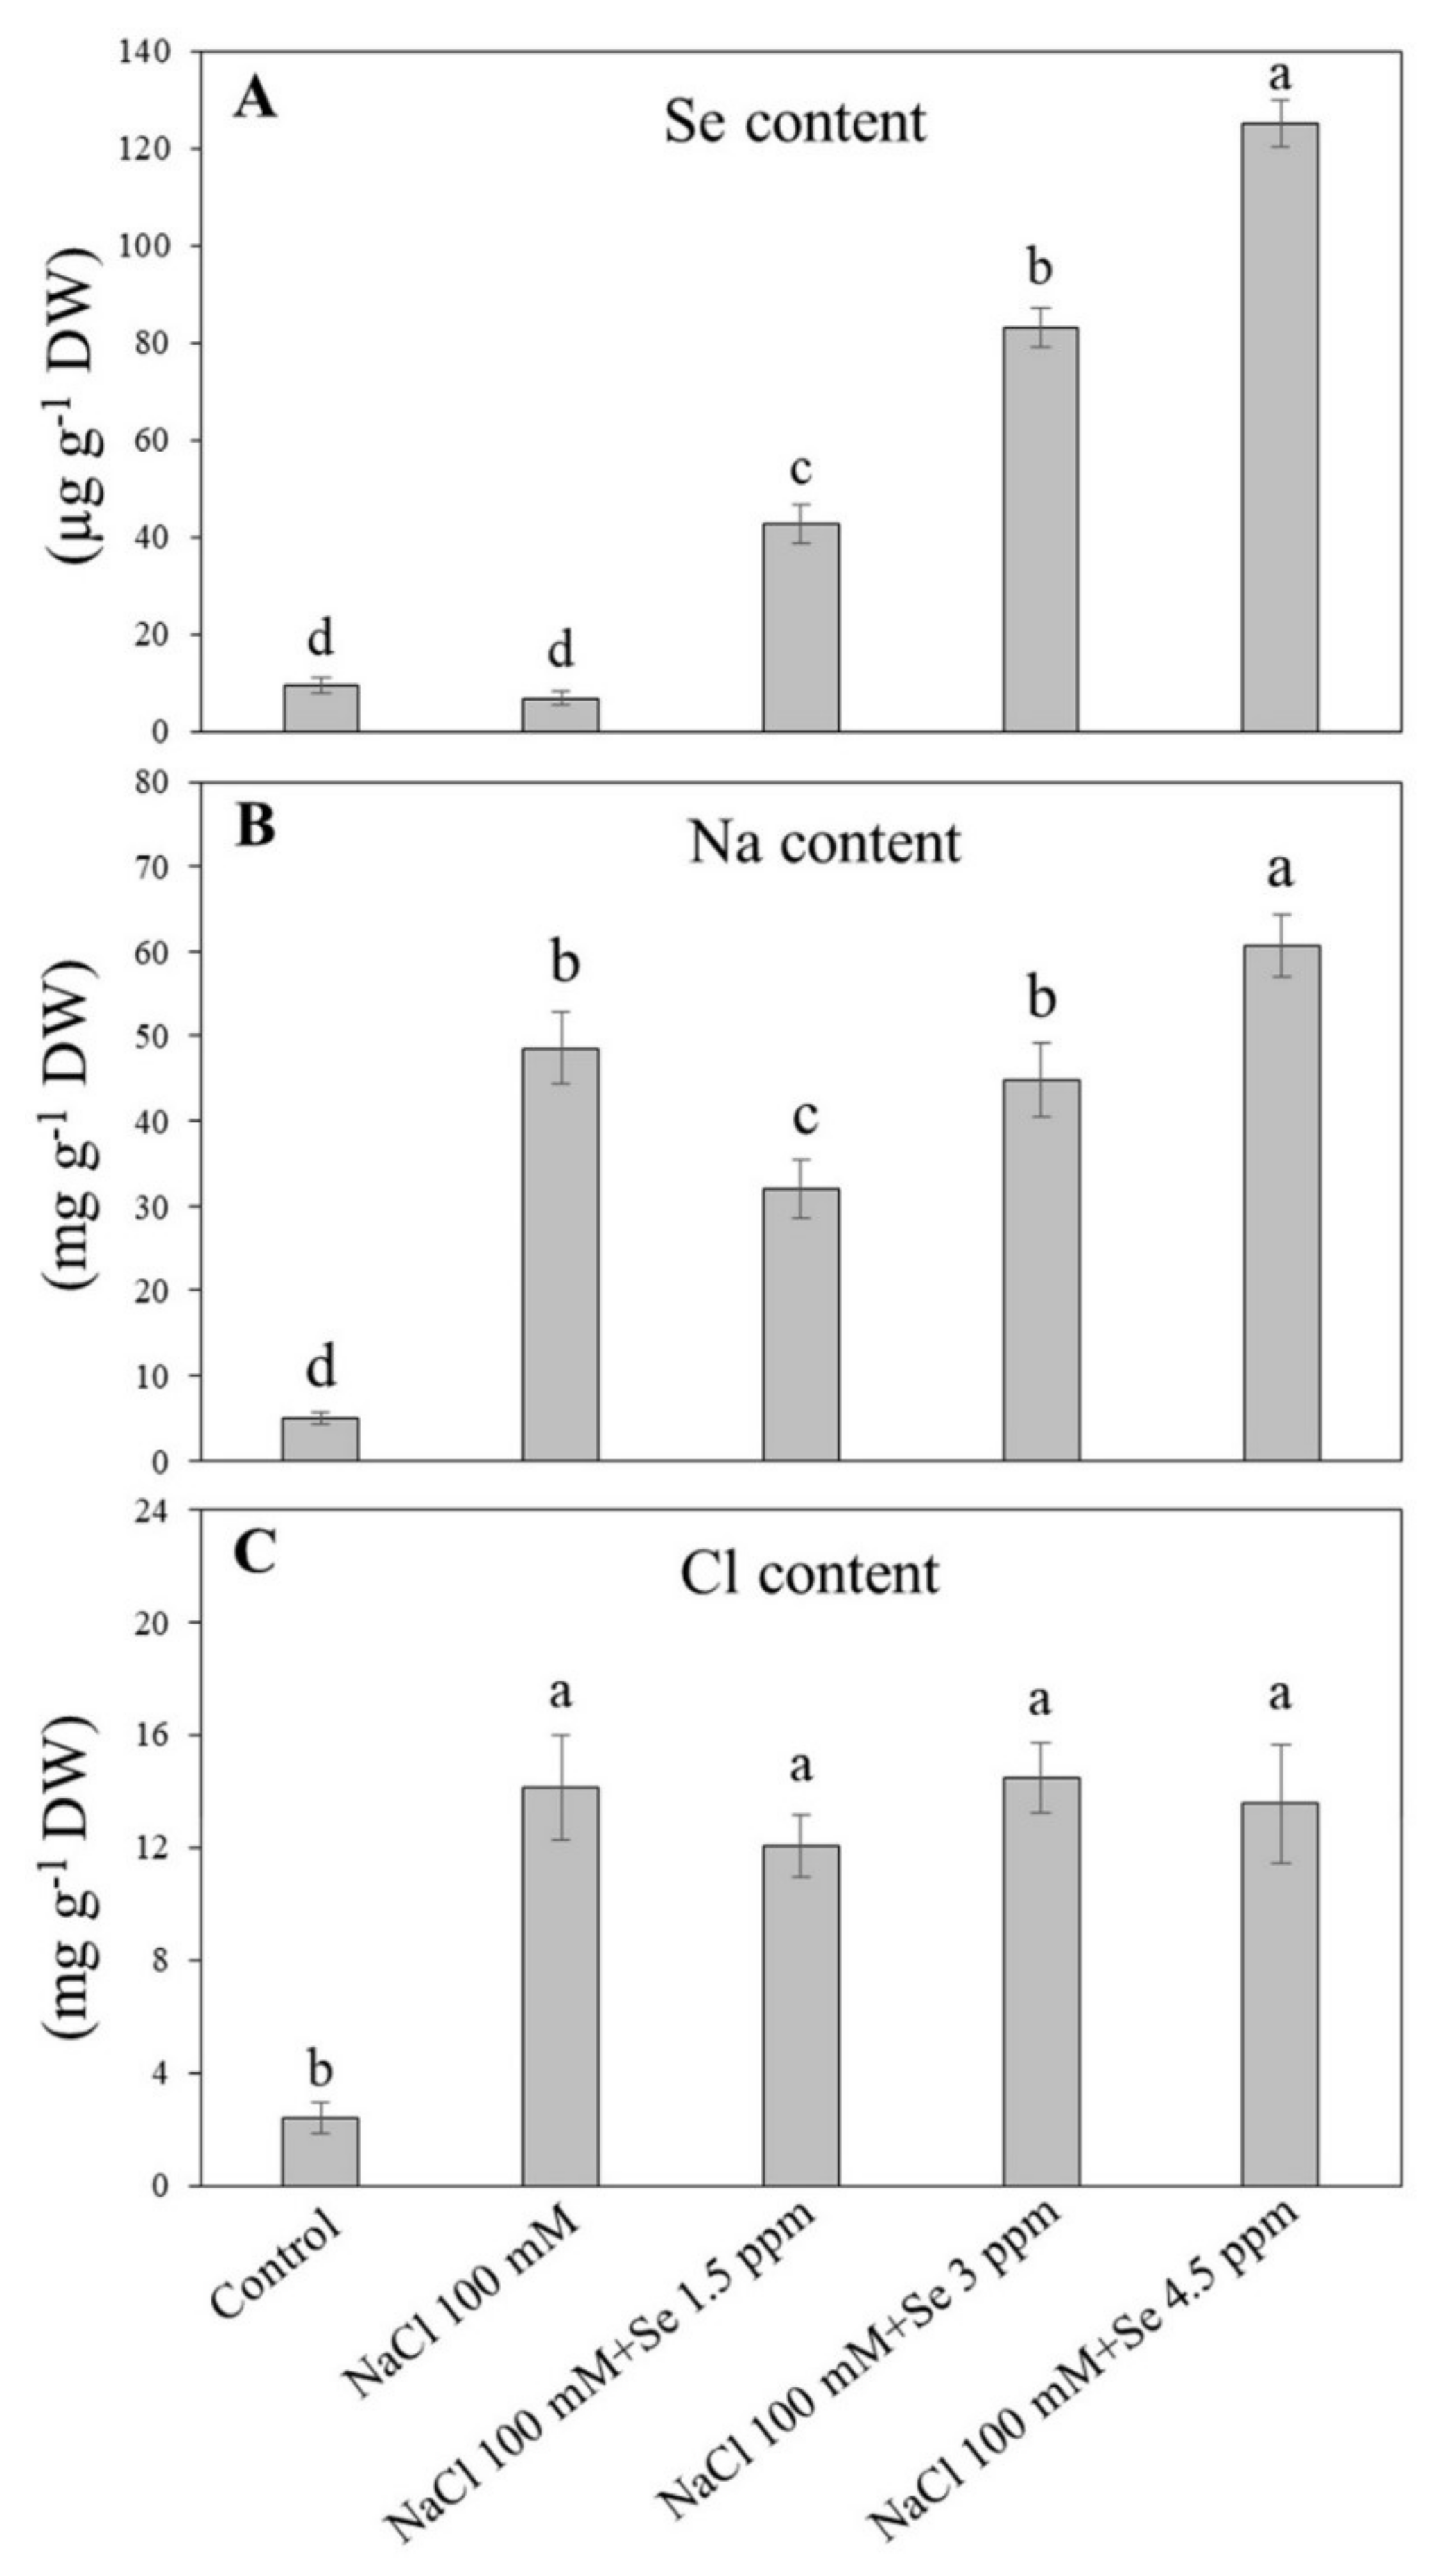 Plants | Free Full-Text | Selenium and Salt Interactions in Black Gram  (Vigna mungo L): Ion Uptake, Antioxidant Defense System, and Photochemistry  Efficiency | HTML